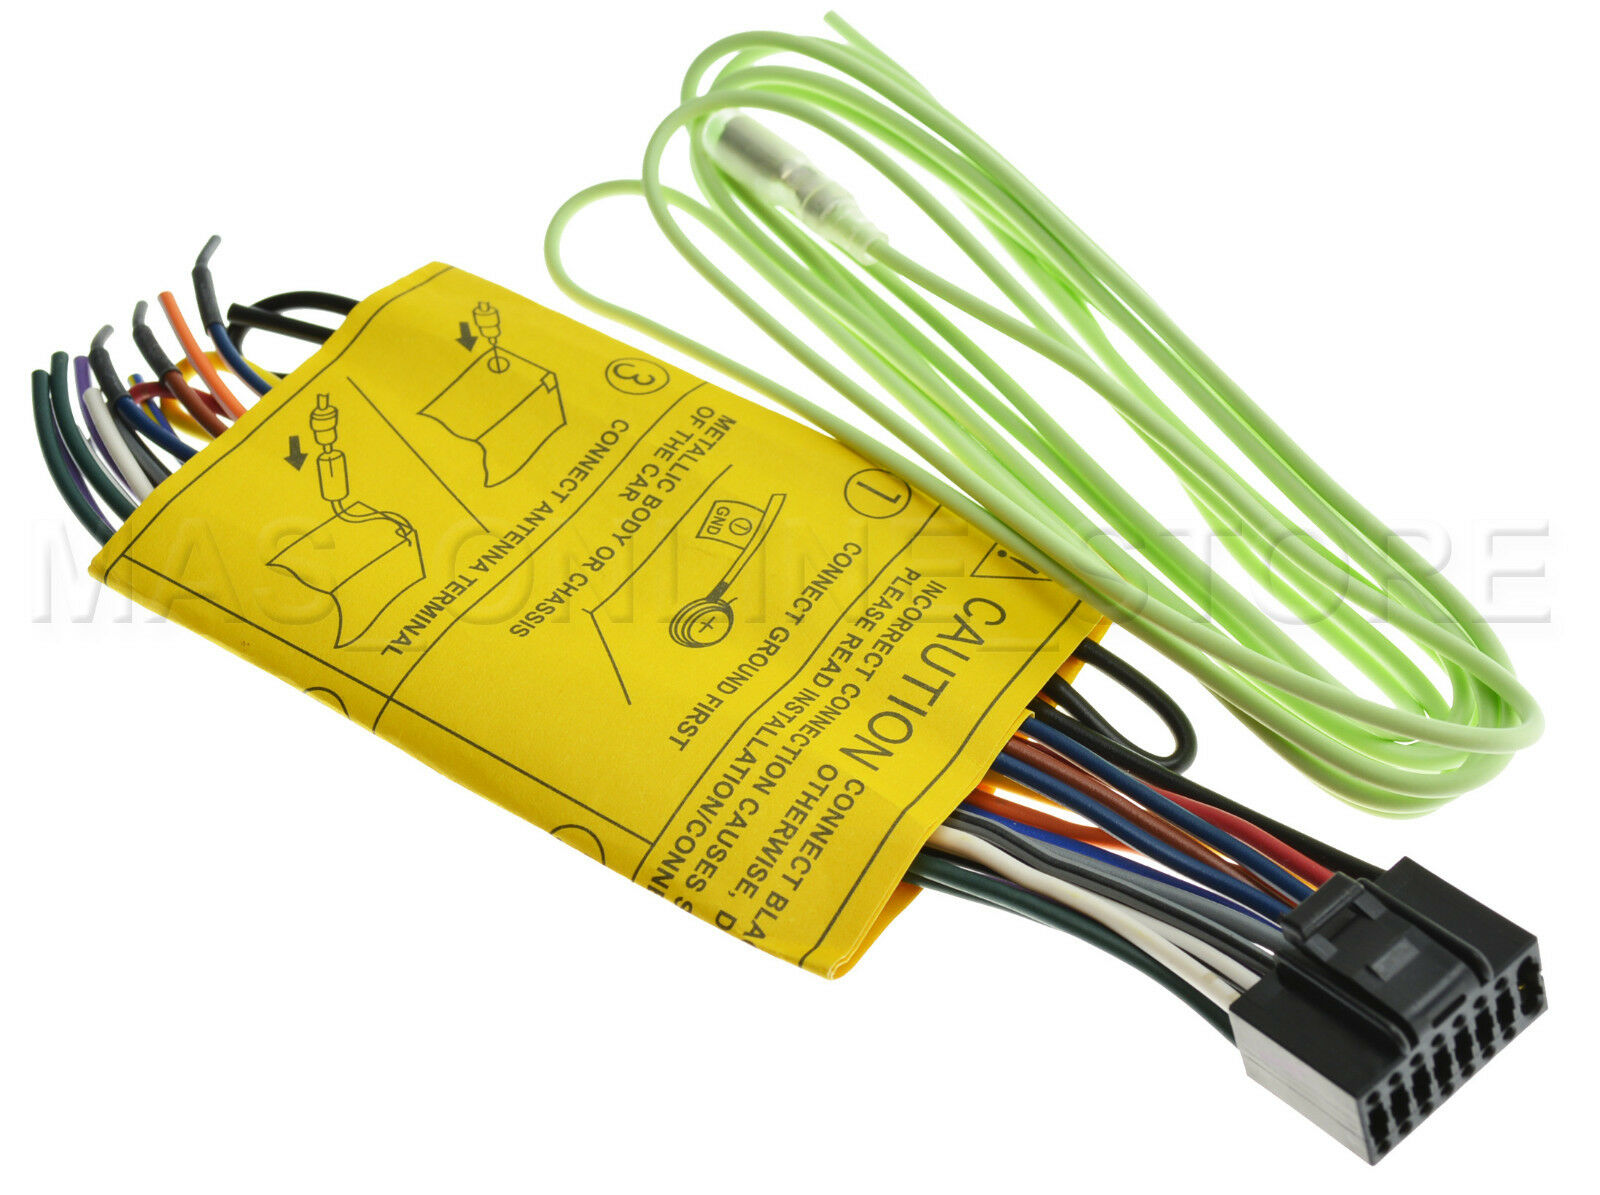 Jvc Kw Adv64bt Kwadv64bt Genuine Wire Harness Pay Today Ships Connection 1 Of 6only Available